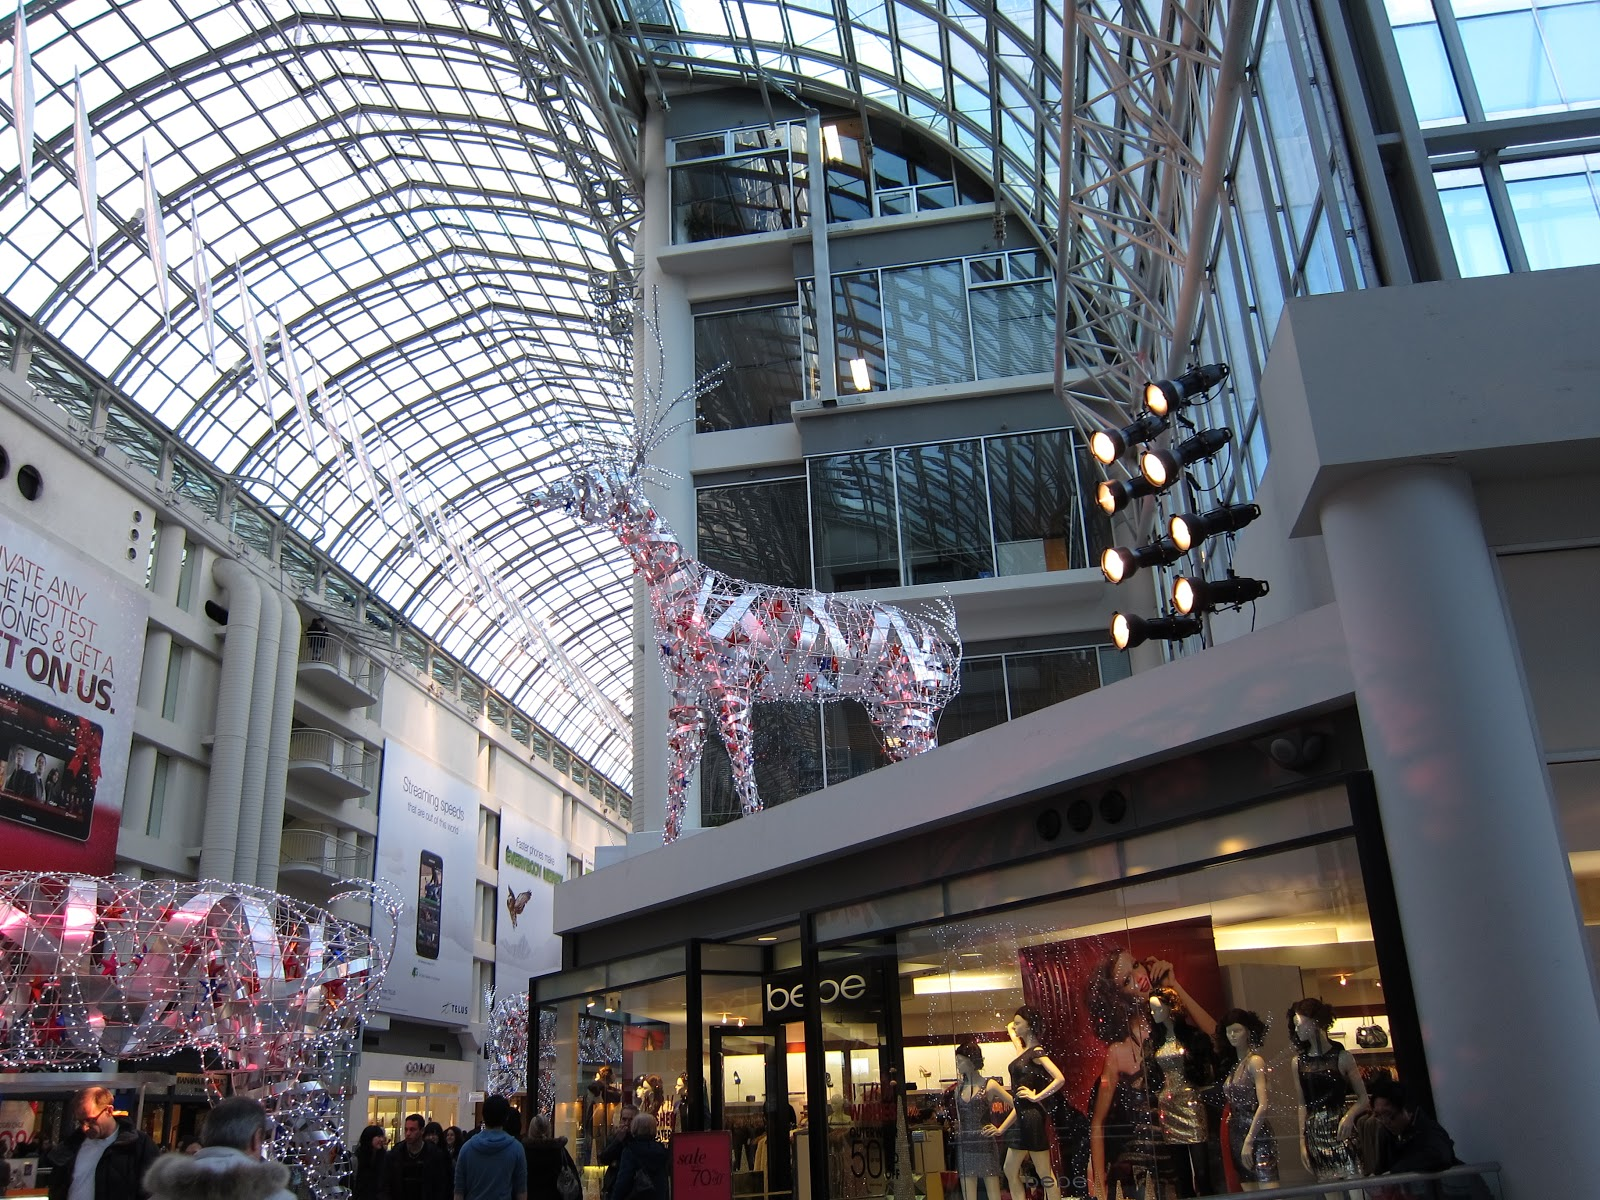 This year, holiday shoppers at the Eaton Centre will be able to take advantage of extended hours that will take effect August (STEVE RUSSELL / TORONTO STAR) The venue will be open a.m. to p.m., Monday to Saturday, and 10 a.m. to 7 p.m. on Sundays.